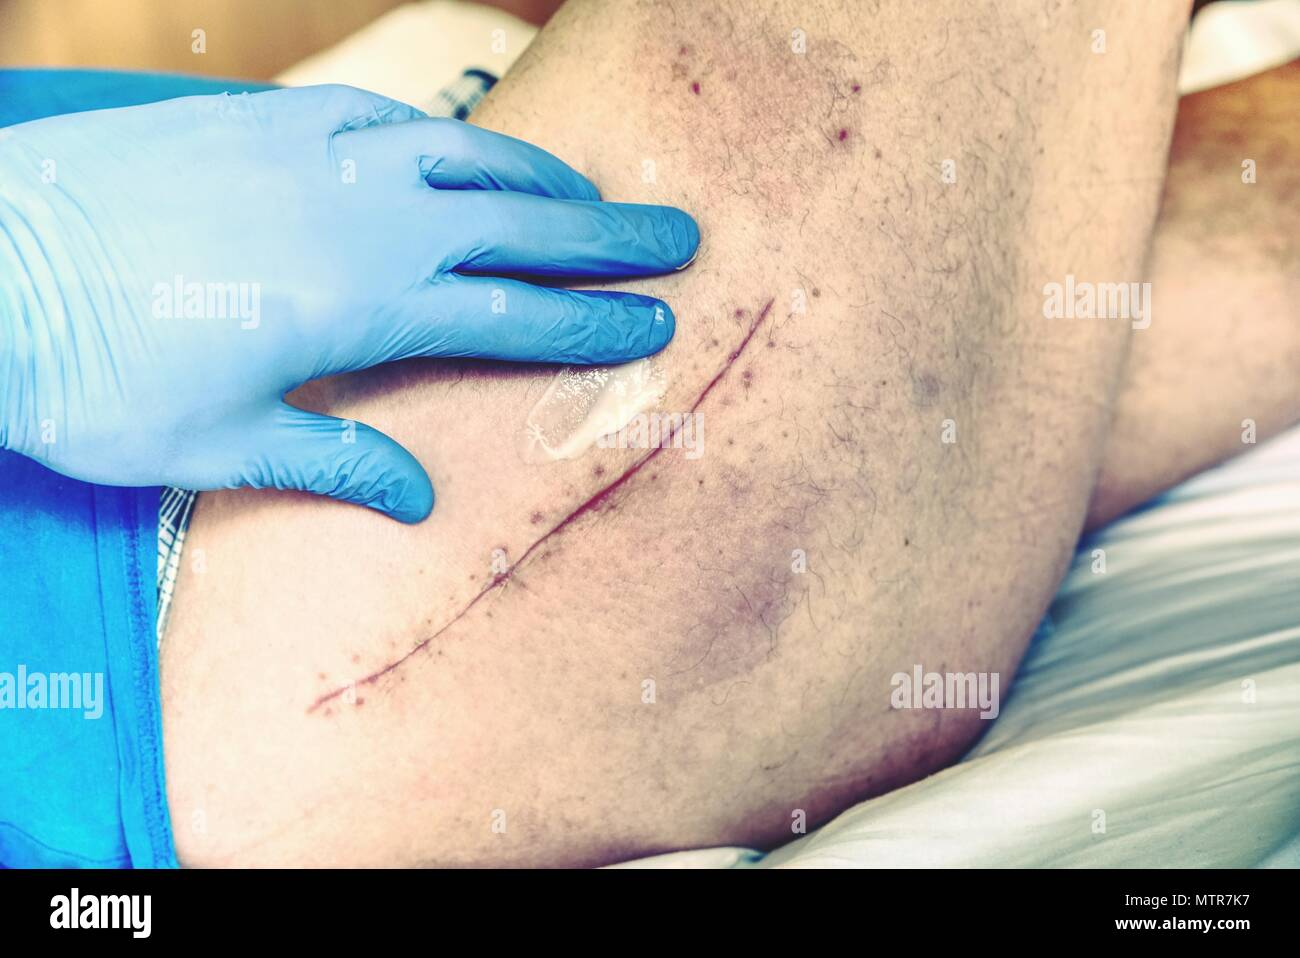 Old Human leg with postoperative scar of hip joint surgery.  Detail of skin with deep chirurgical cut. Health care in hospital. - Stock Image